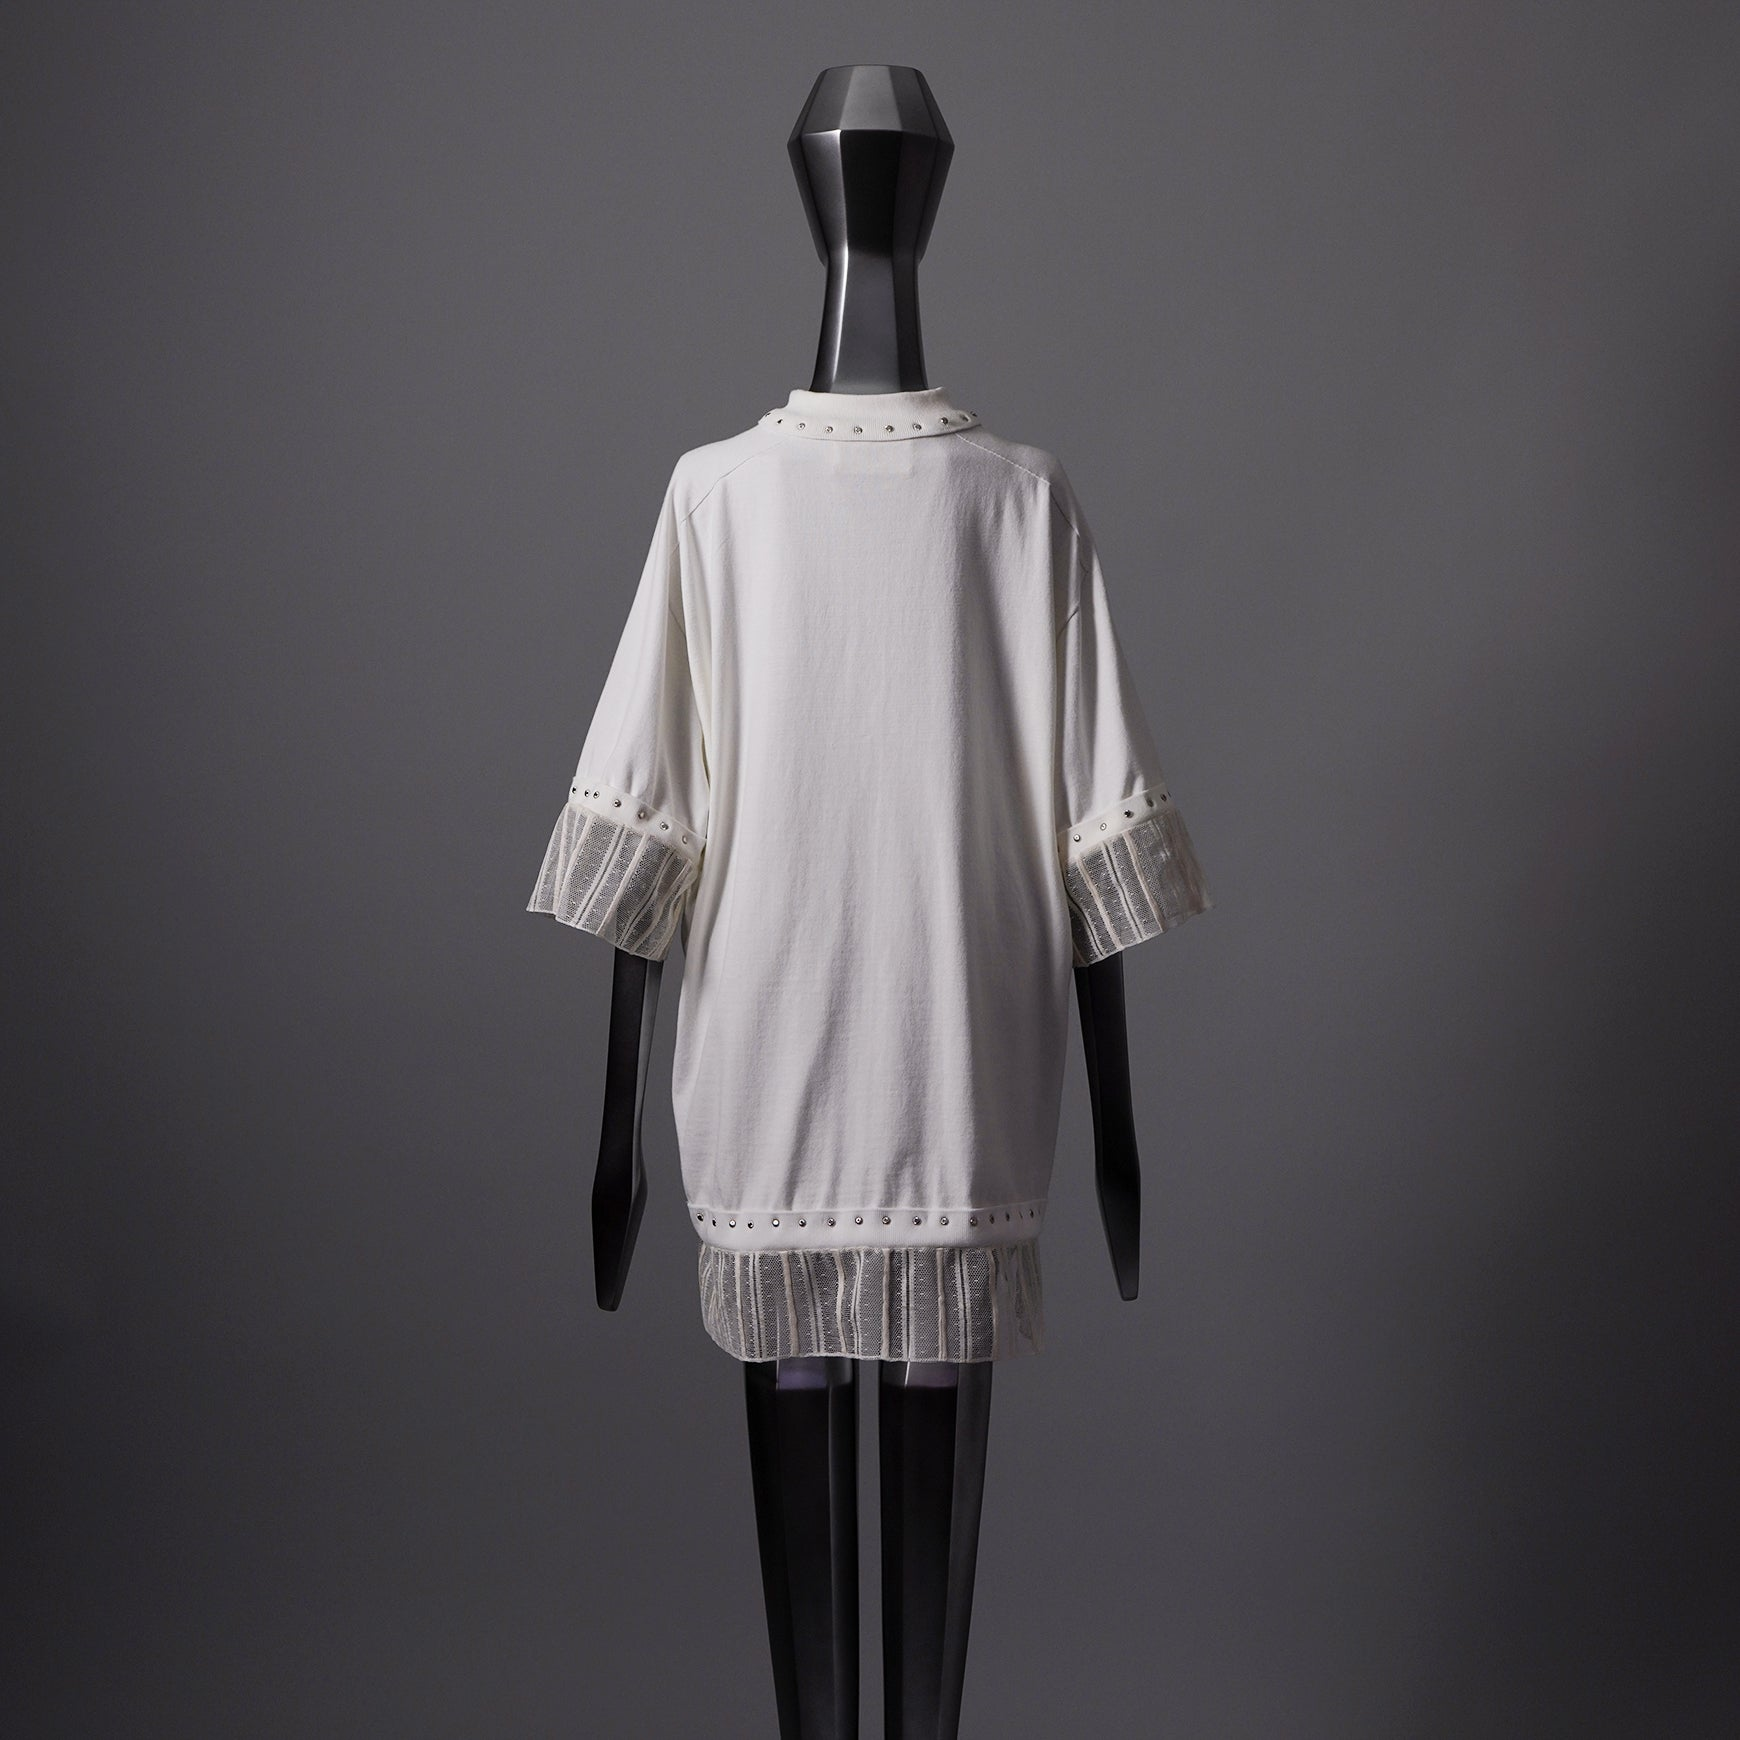 TYPE-1 Knit Organic Cotton Half Sleeves with French Lace Sleeve Parts Short (White Stripes)